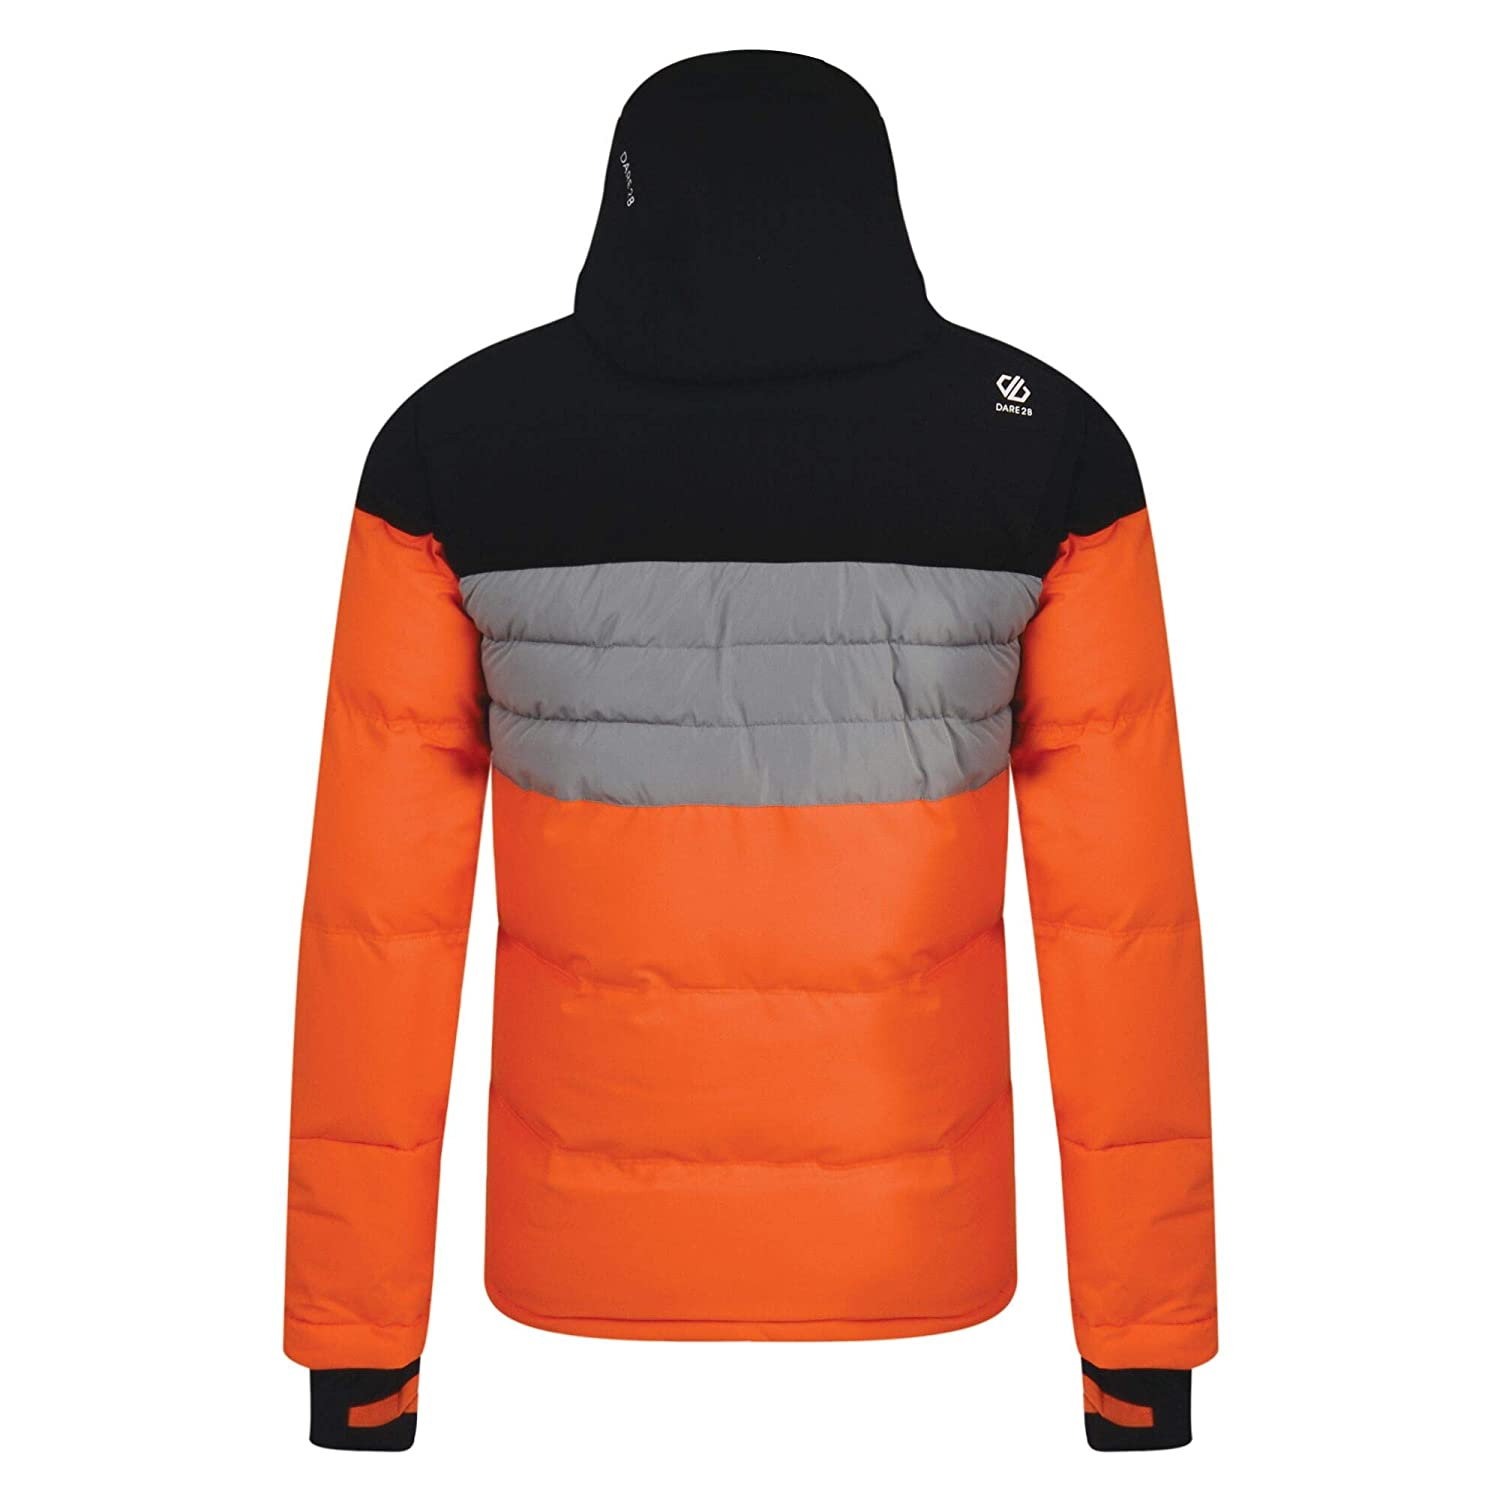 Hombre Dare 2b Connate Waterproof /& Breathable Quilted Silhouette High Loft Insulated Ski /& Snowboard Hooded Jacket Chaquetas aislantes Impermeables